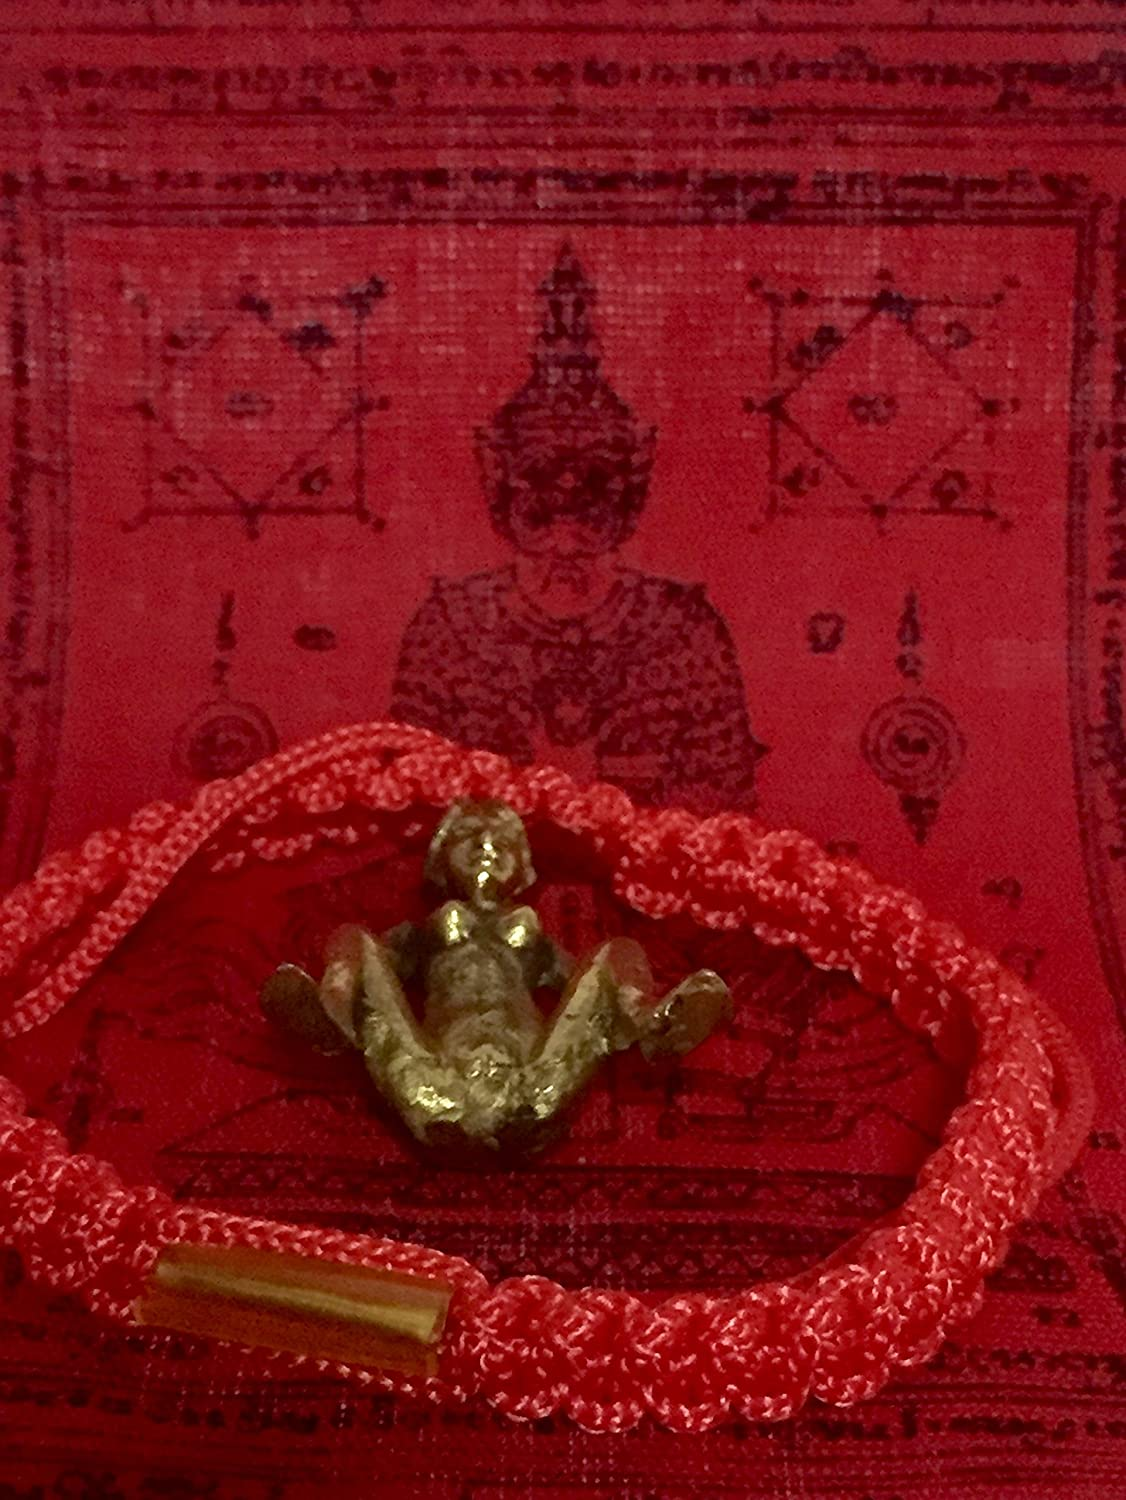 Miracle Gift Thai Magic for Love /& Lucky Pendants Amazing Thailand Thai Buddha Statue Amulet Powerful Luck in Lover E-pher Amulets Love Atracction Pendants